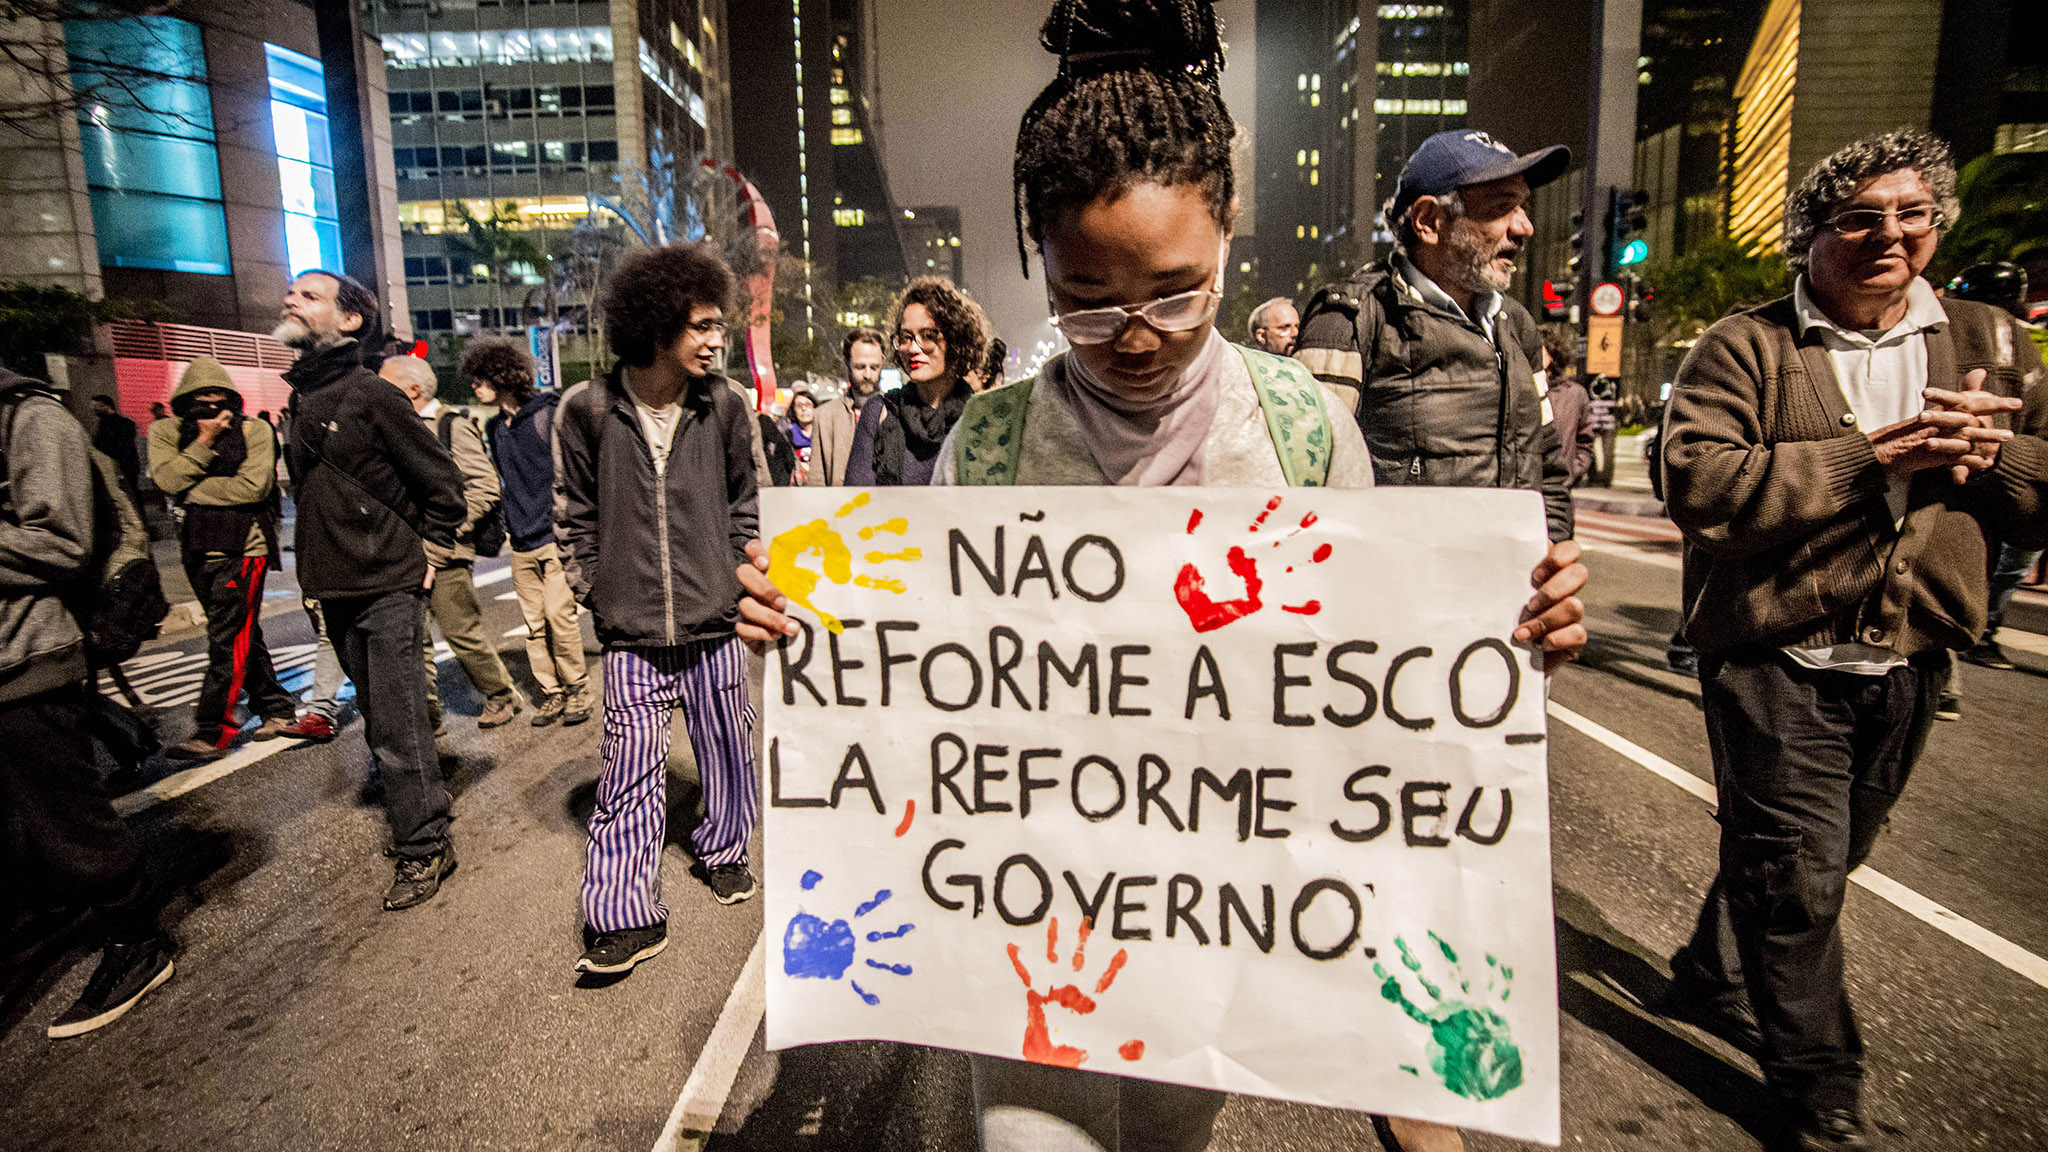 Brazil's Michel Temer battles to sell austerity reforms